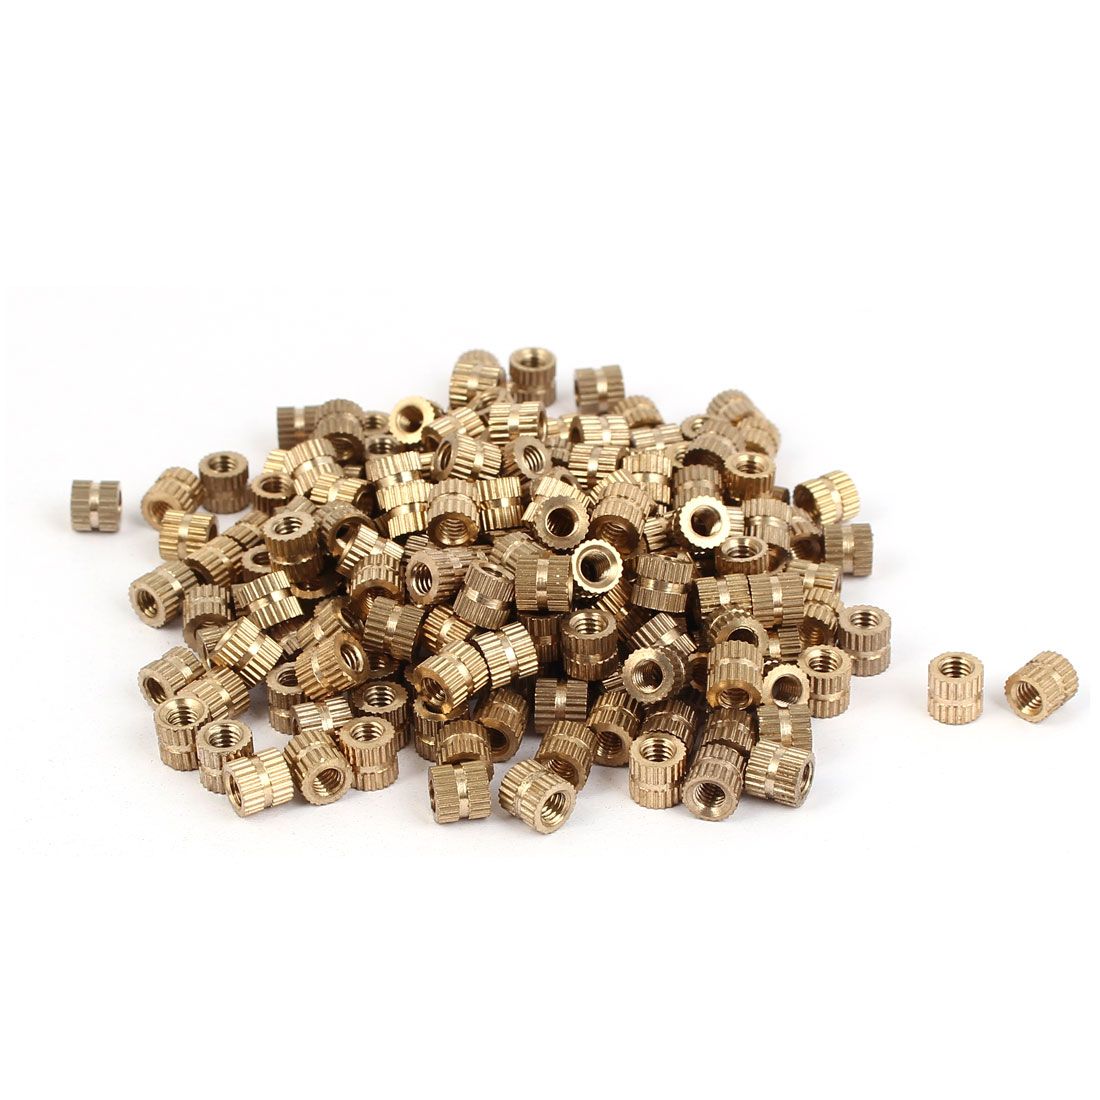 M4 x 6mm Brass Cylinder Injection Molding Knurled Insert Embedded Nuts 200PCS